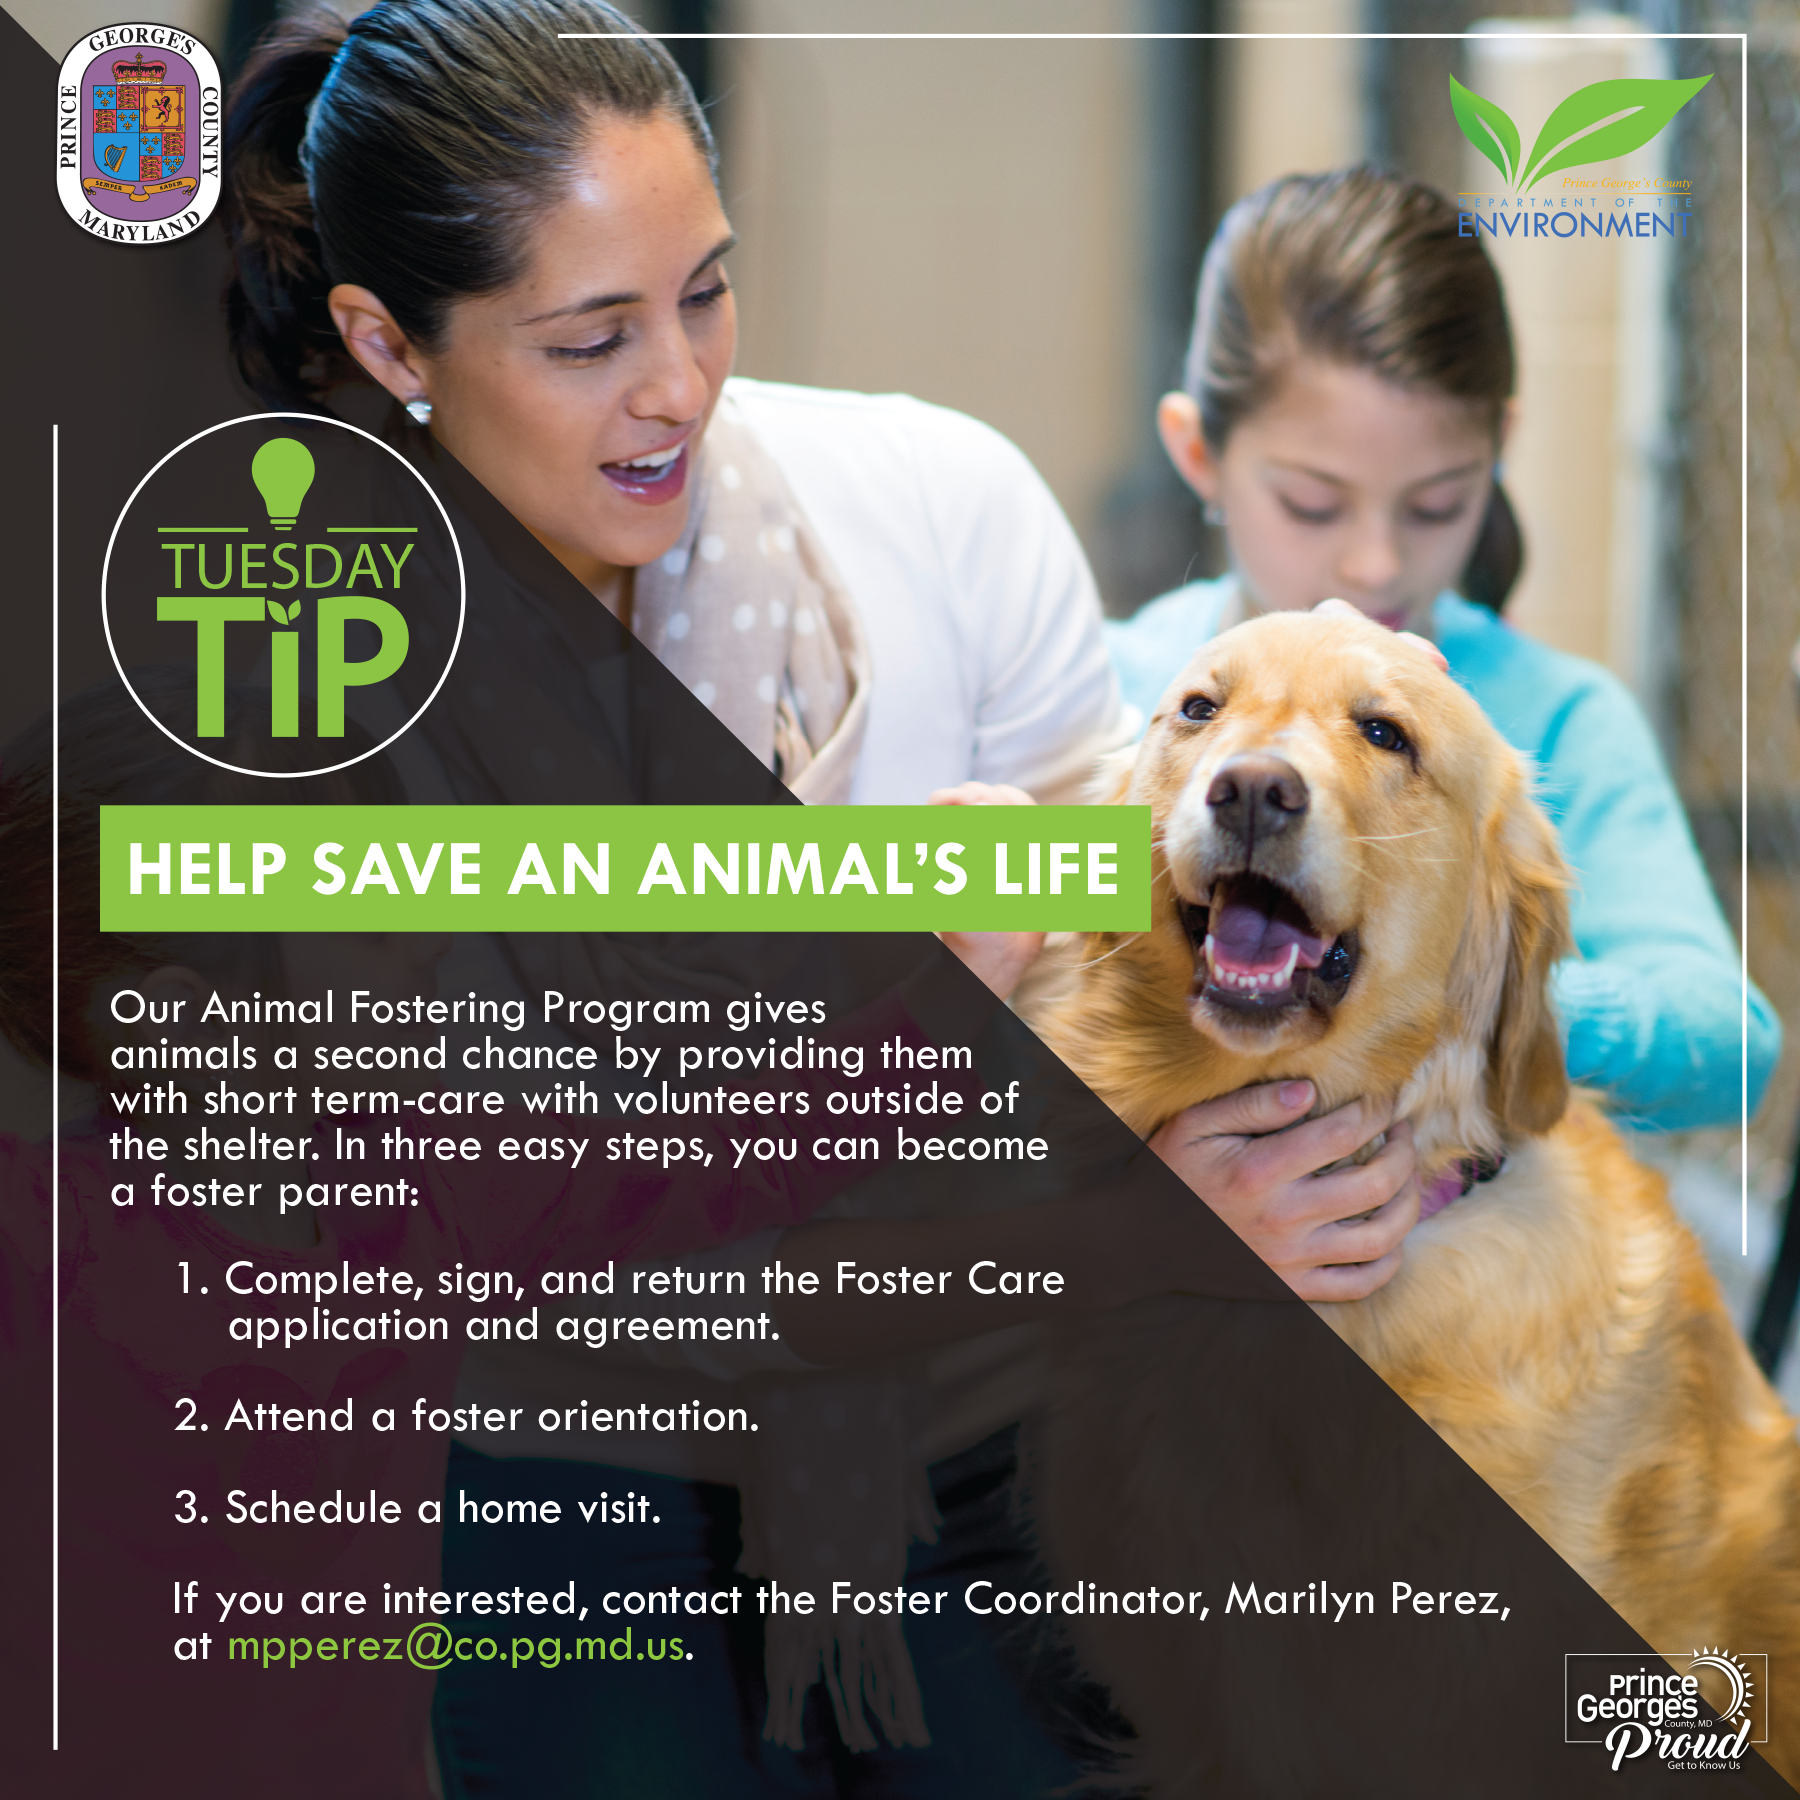 Tues tip 8.10 foster animal eng